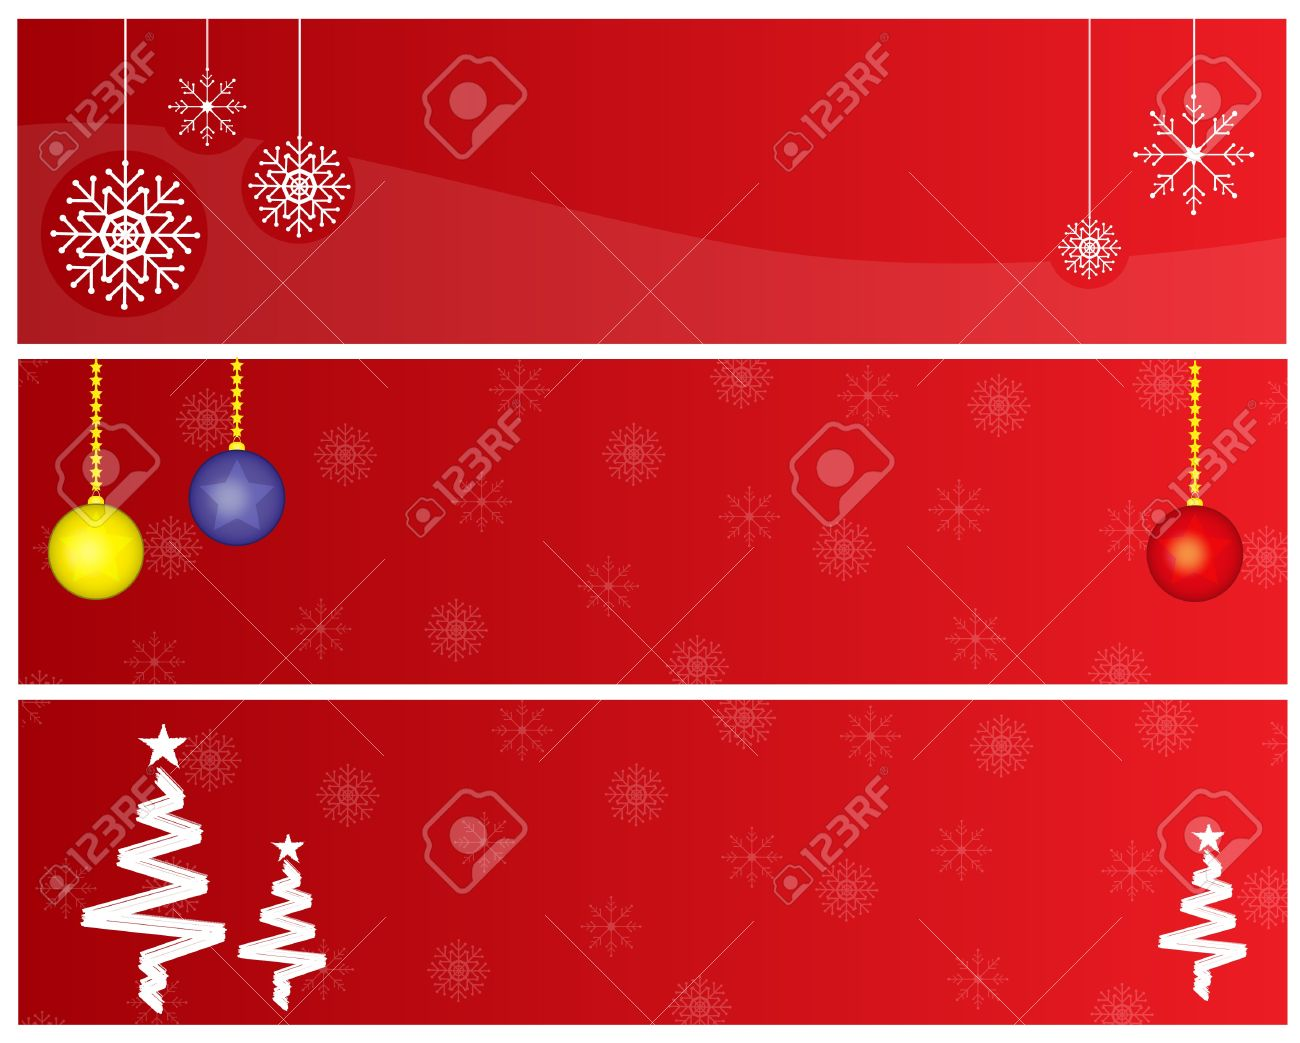 Christmas Banners Part - 32: Red Christmas Banners Stock Vector - 16442564